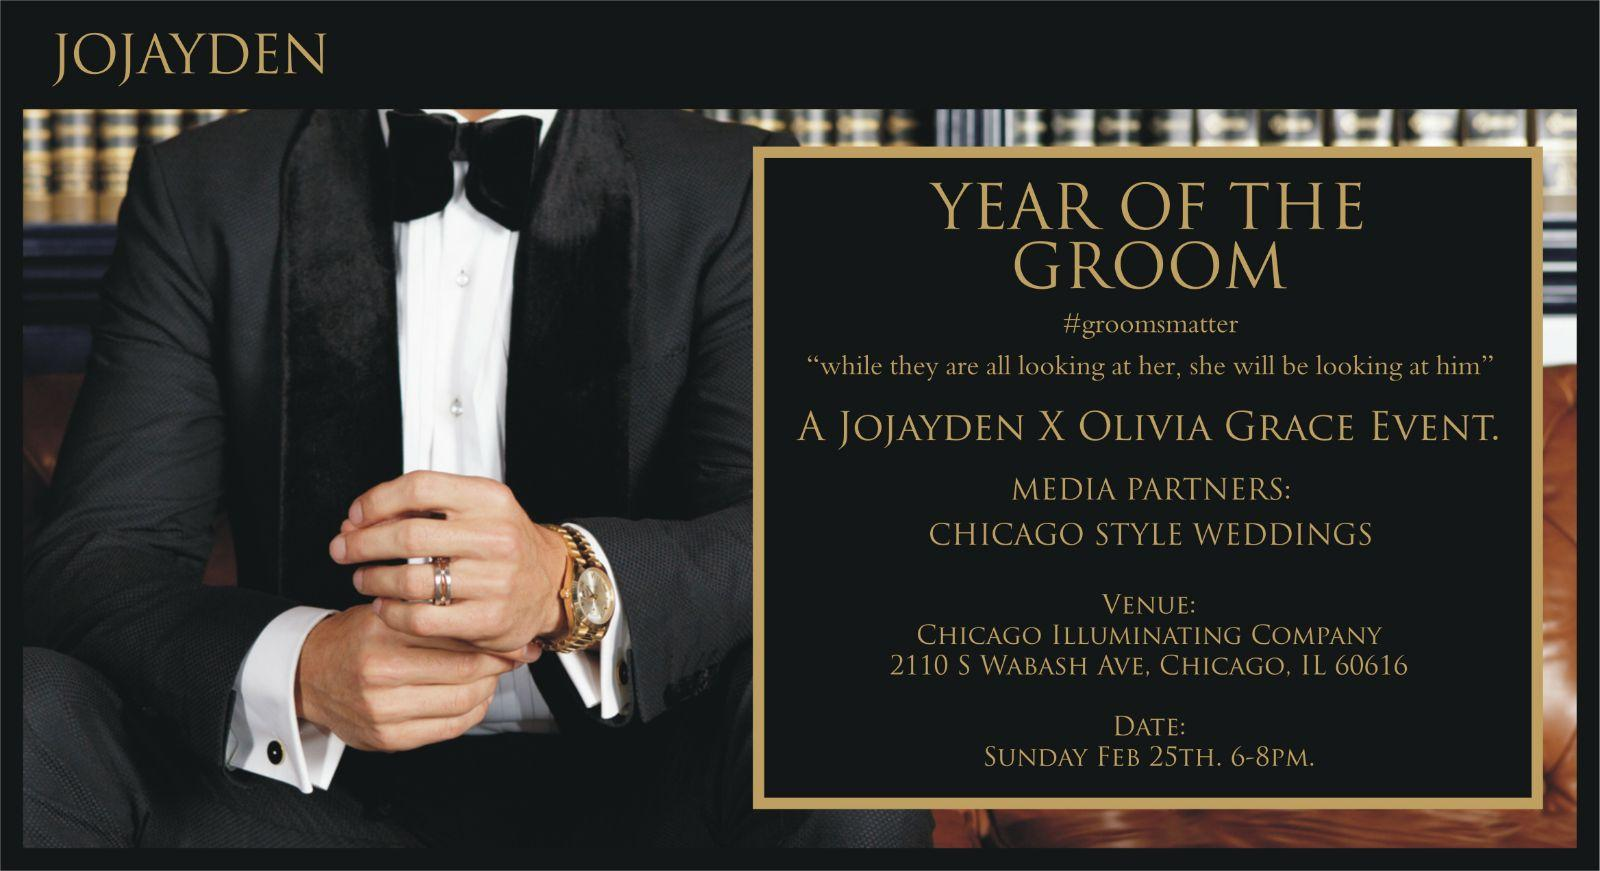 YEAR OF THE GROOM